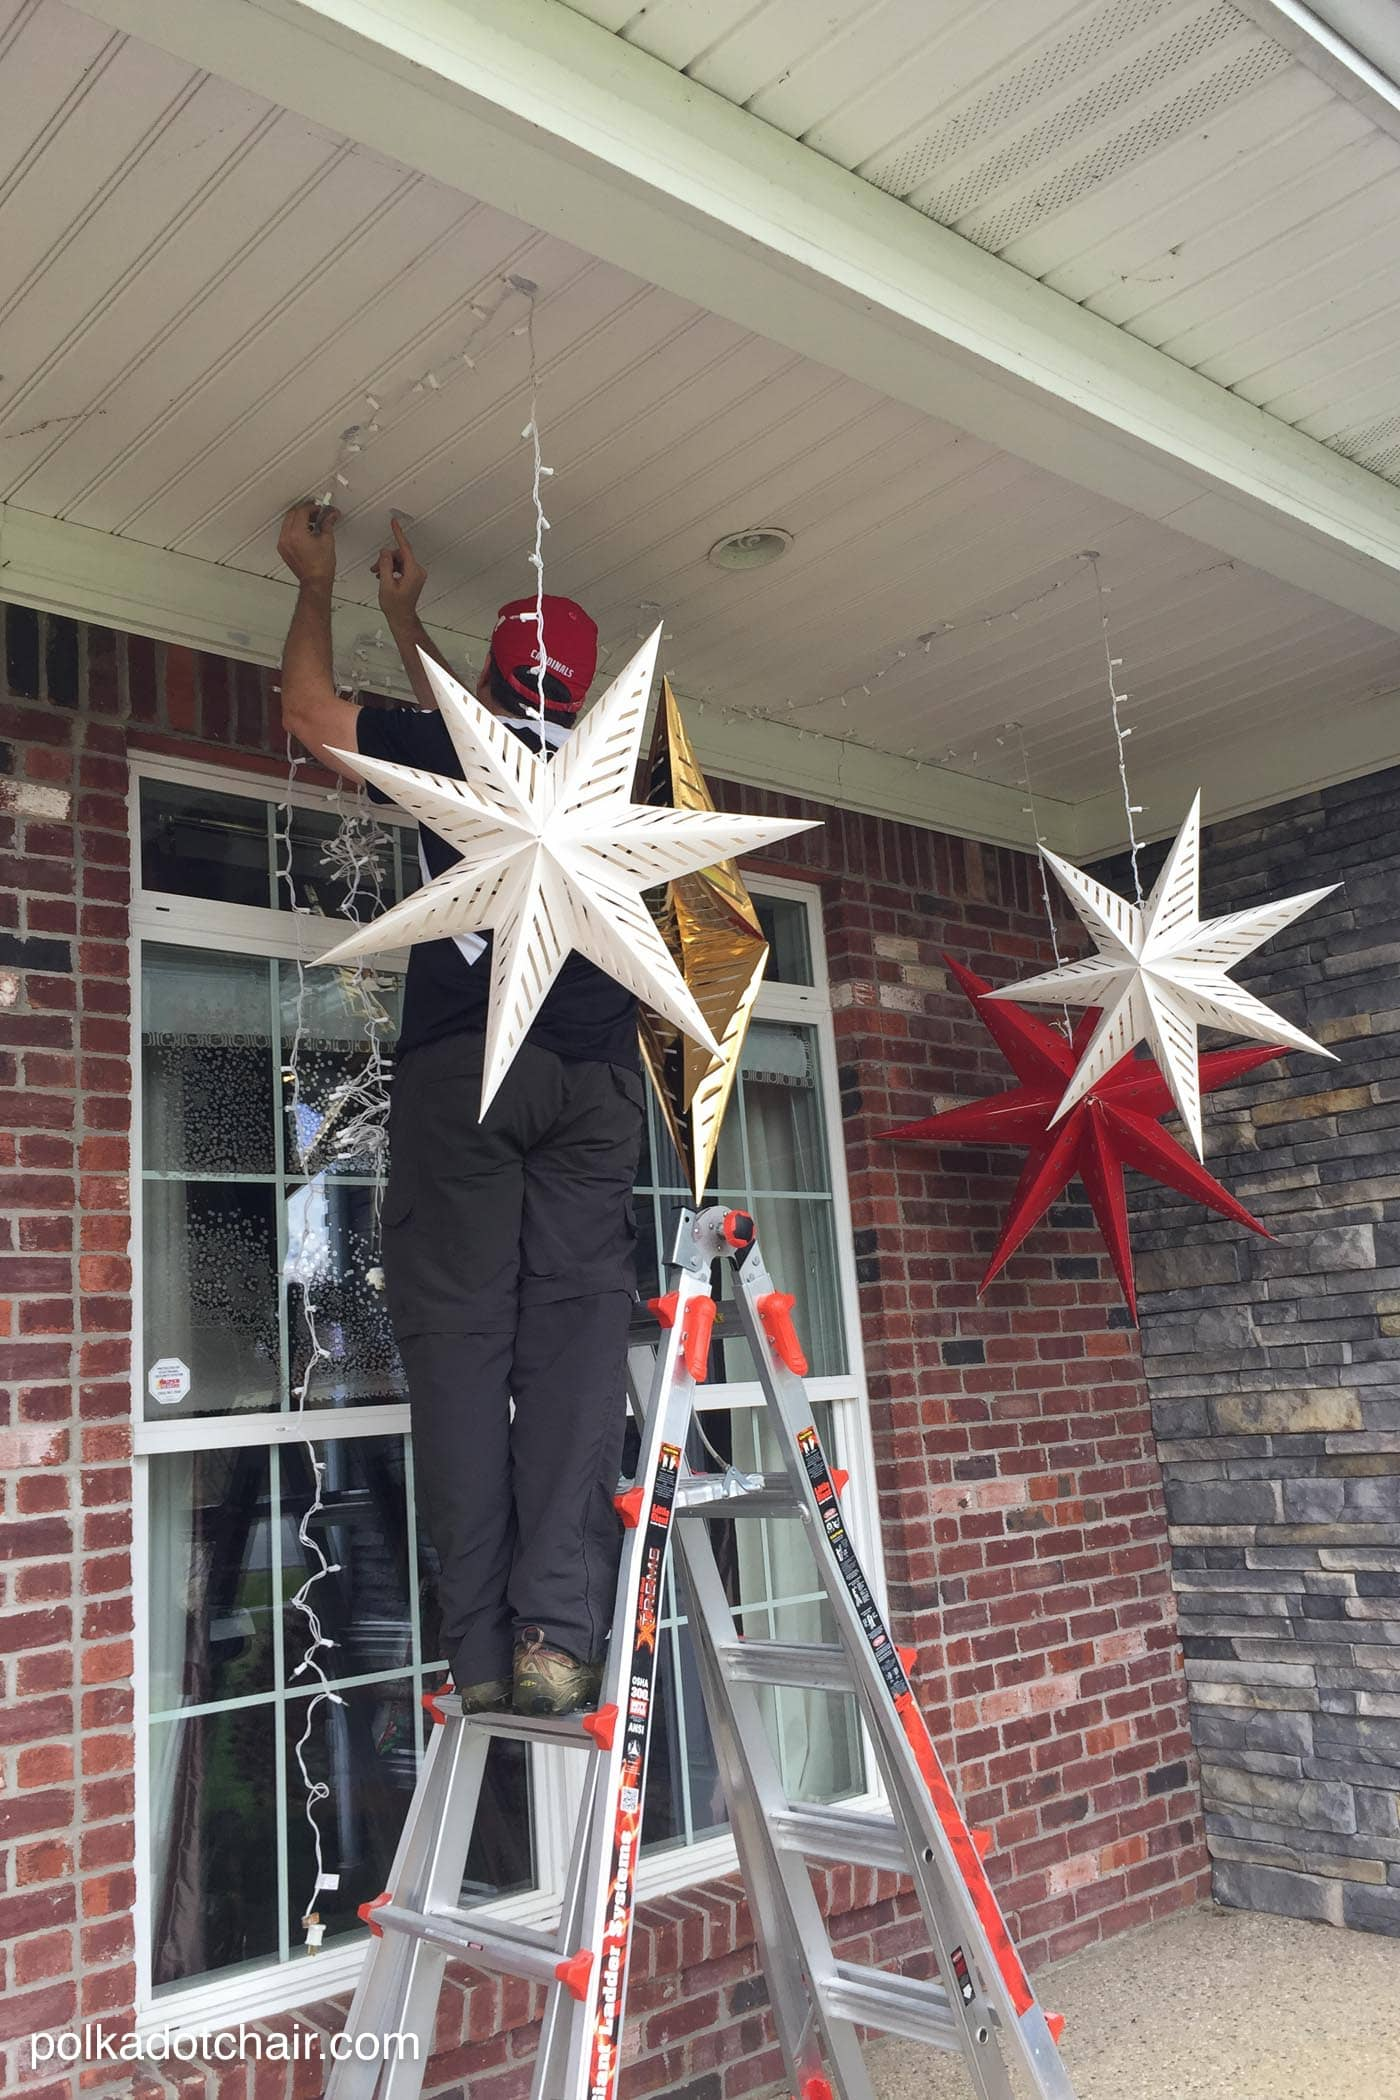 Hanging Star Lanterns A Christmas Front Porch Decorating